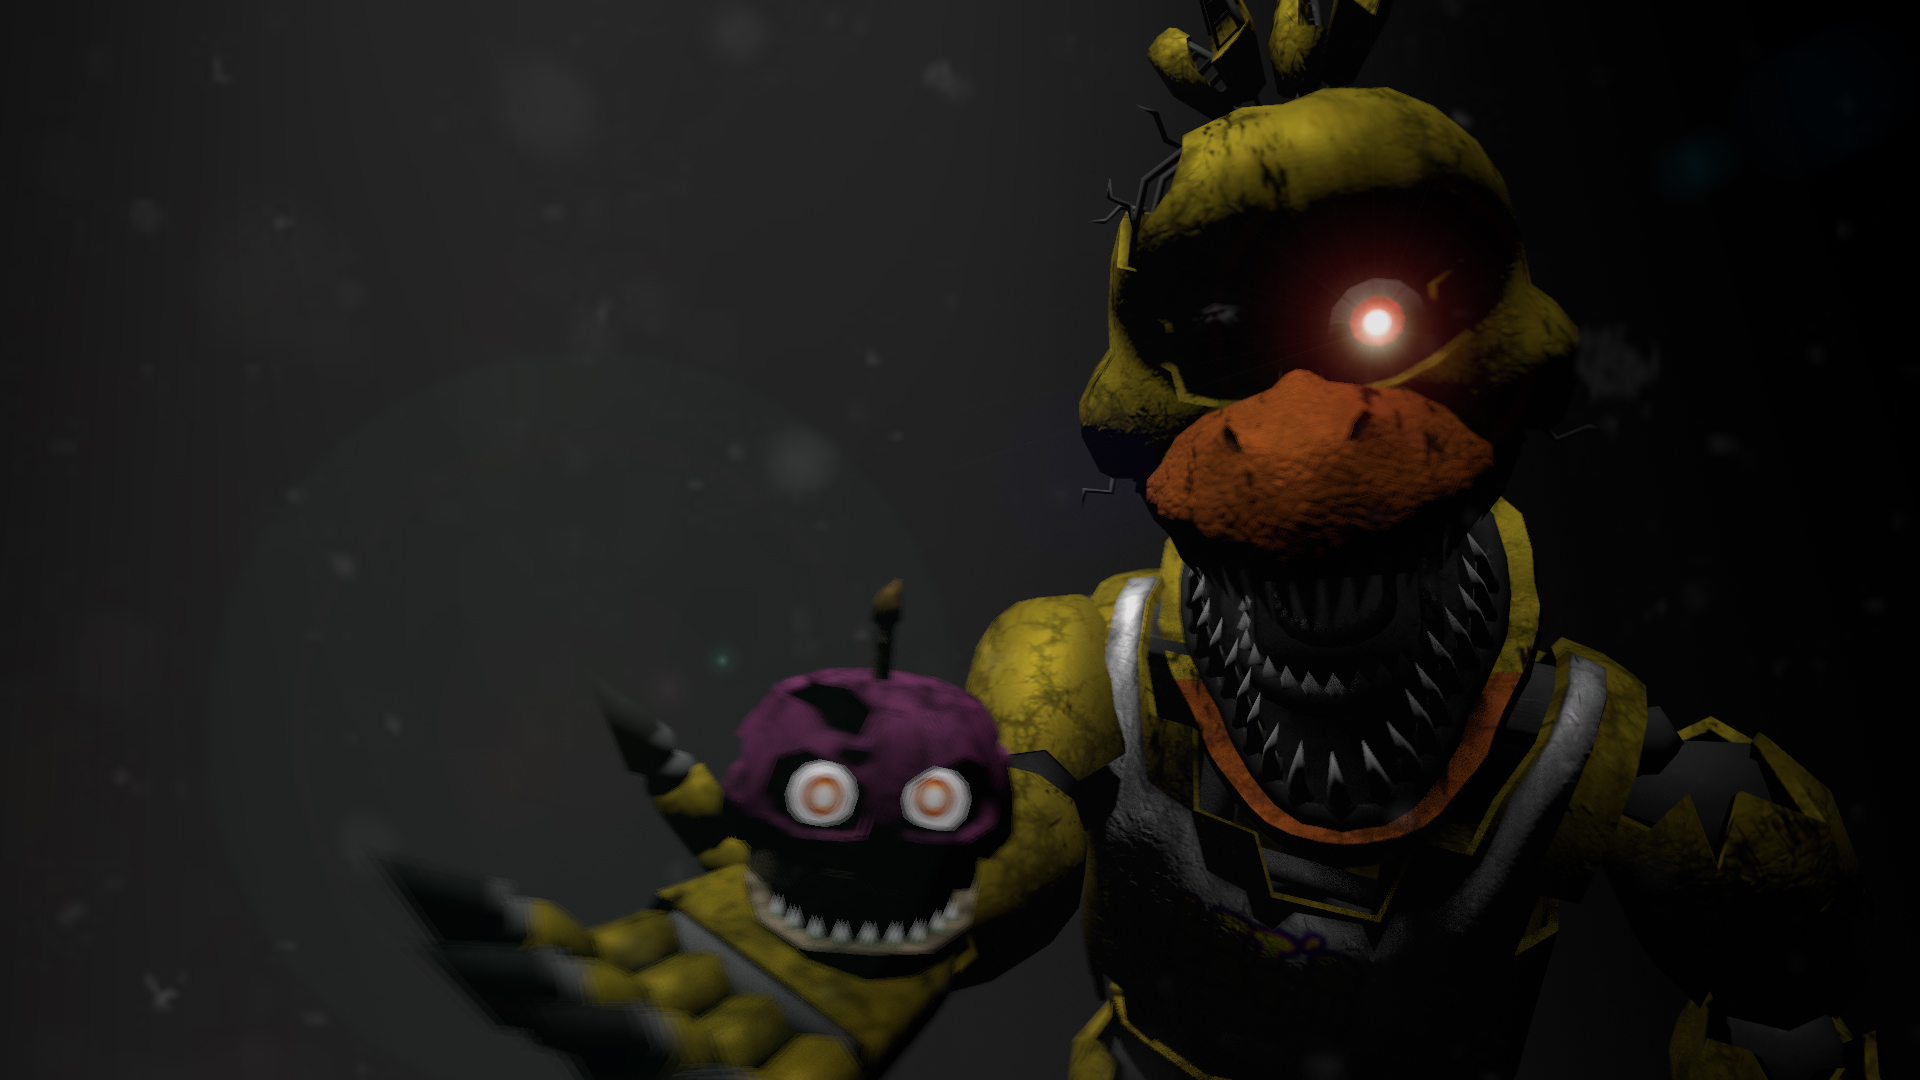 Nightmare chica poster by firerelly on deviantart